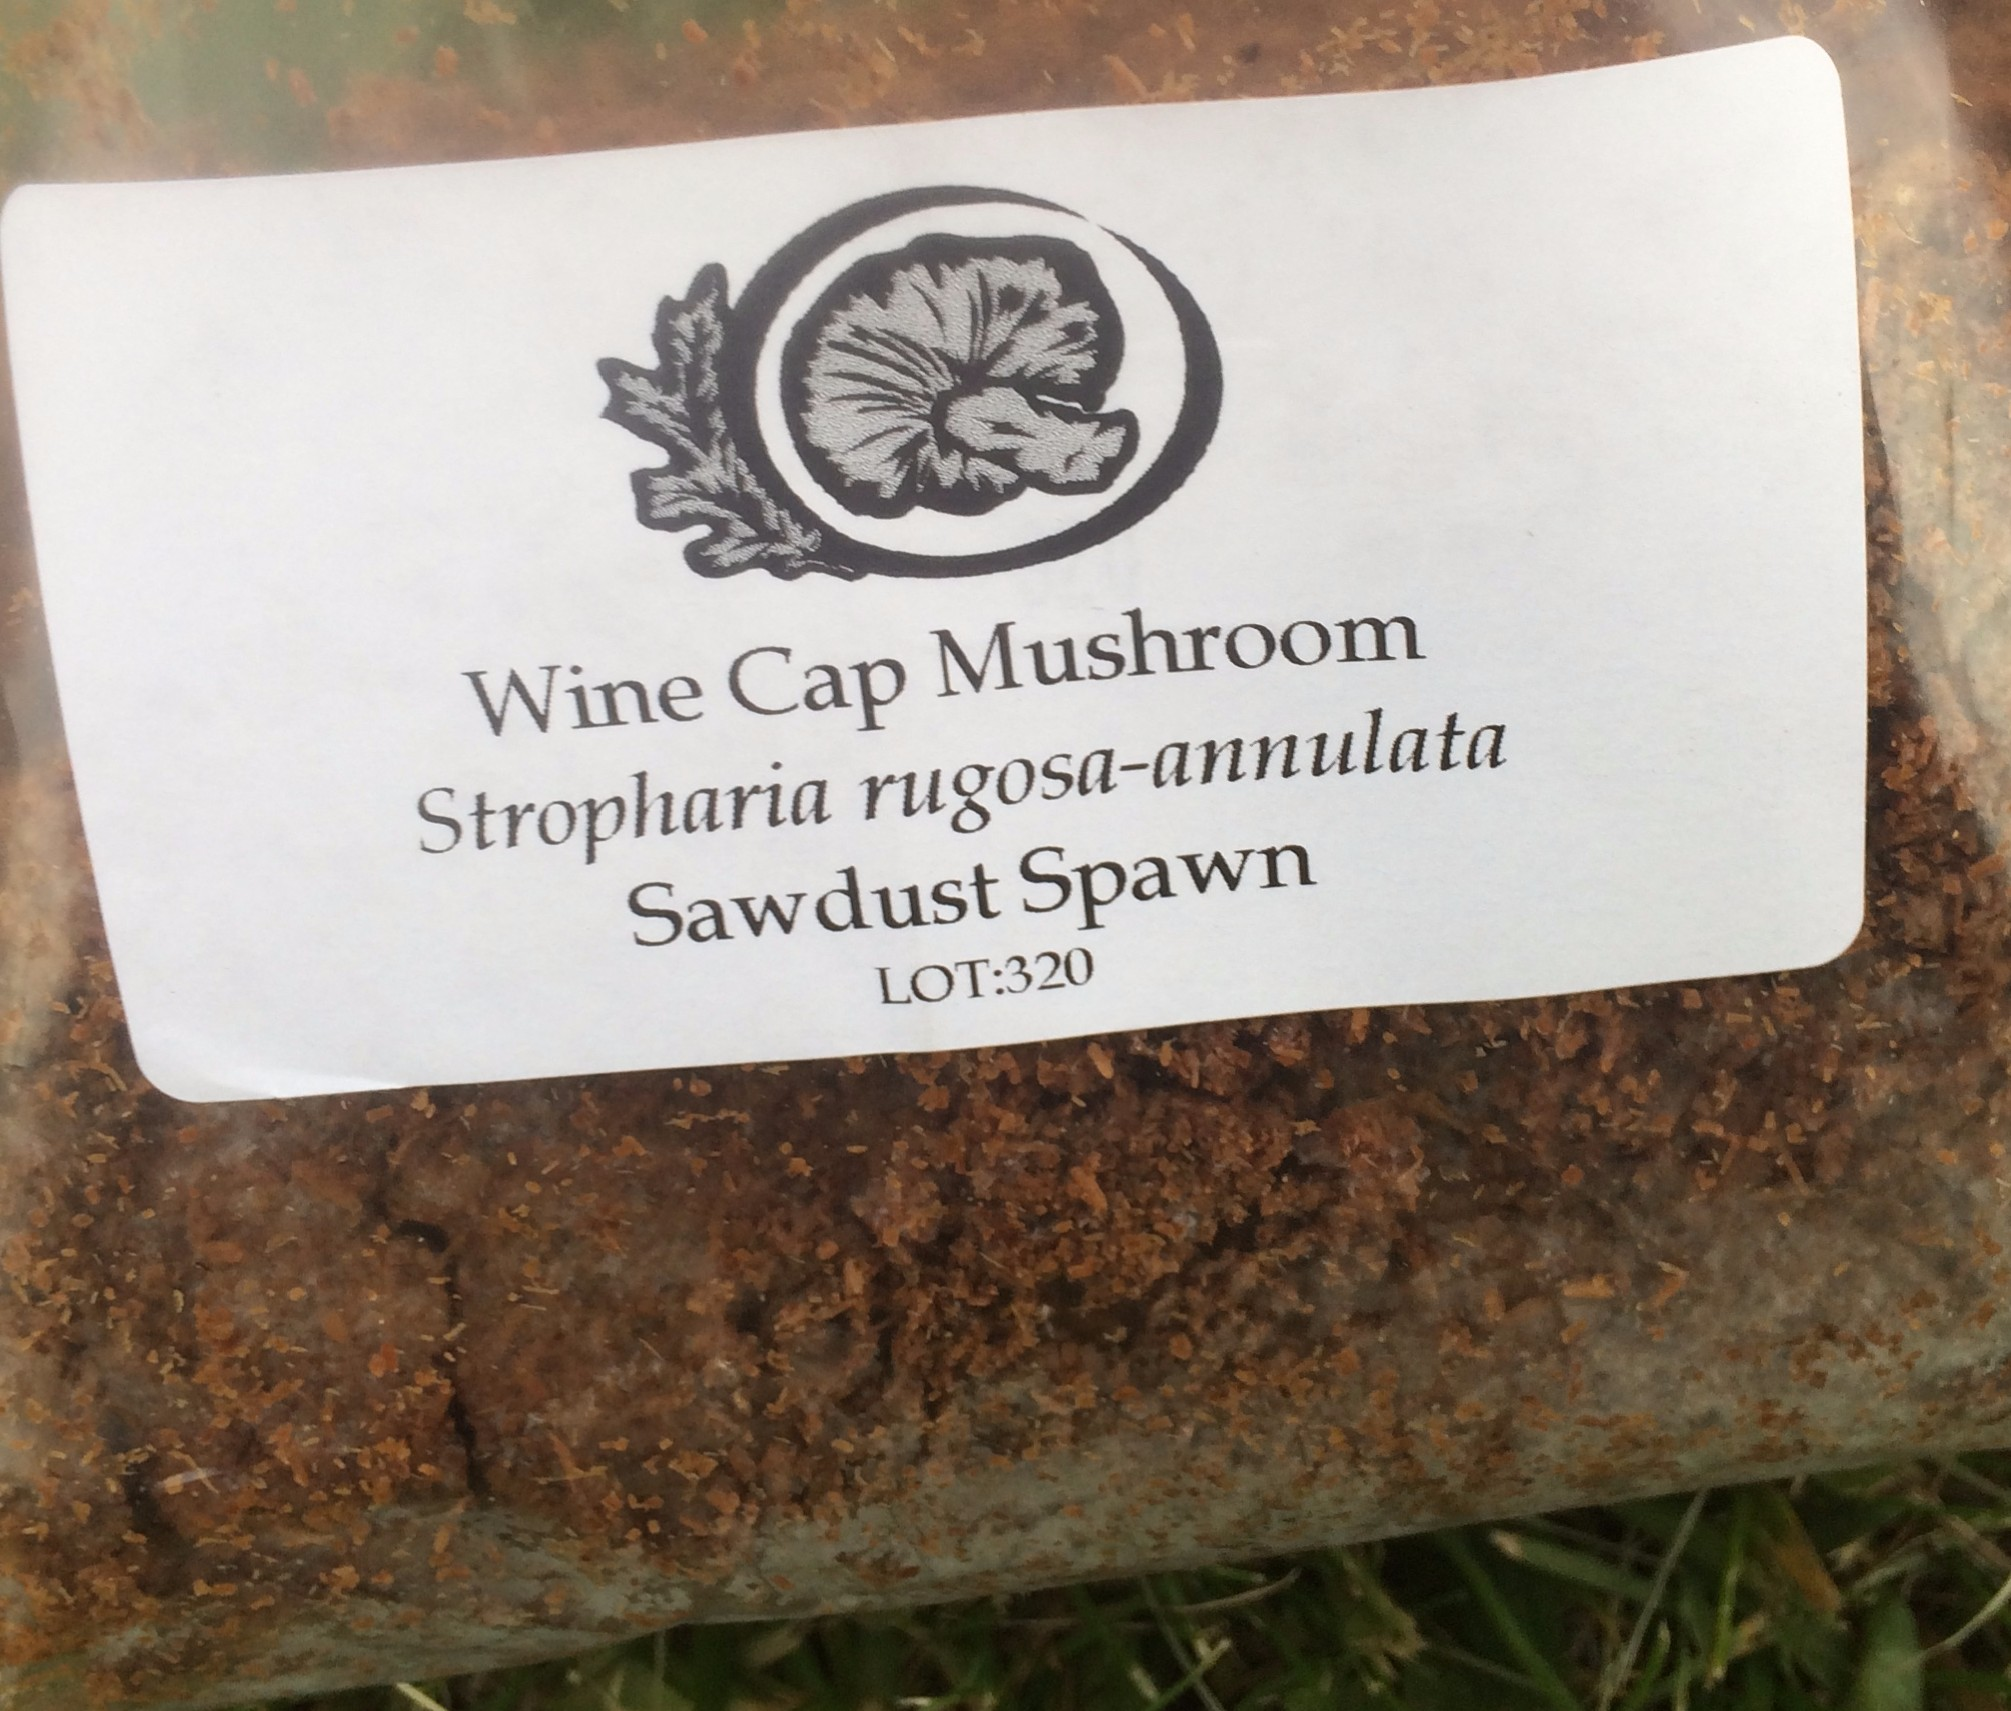 Our Farm: Wine Cap Mushrooms